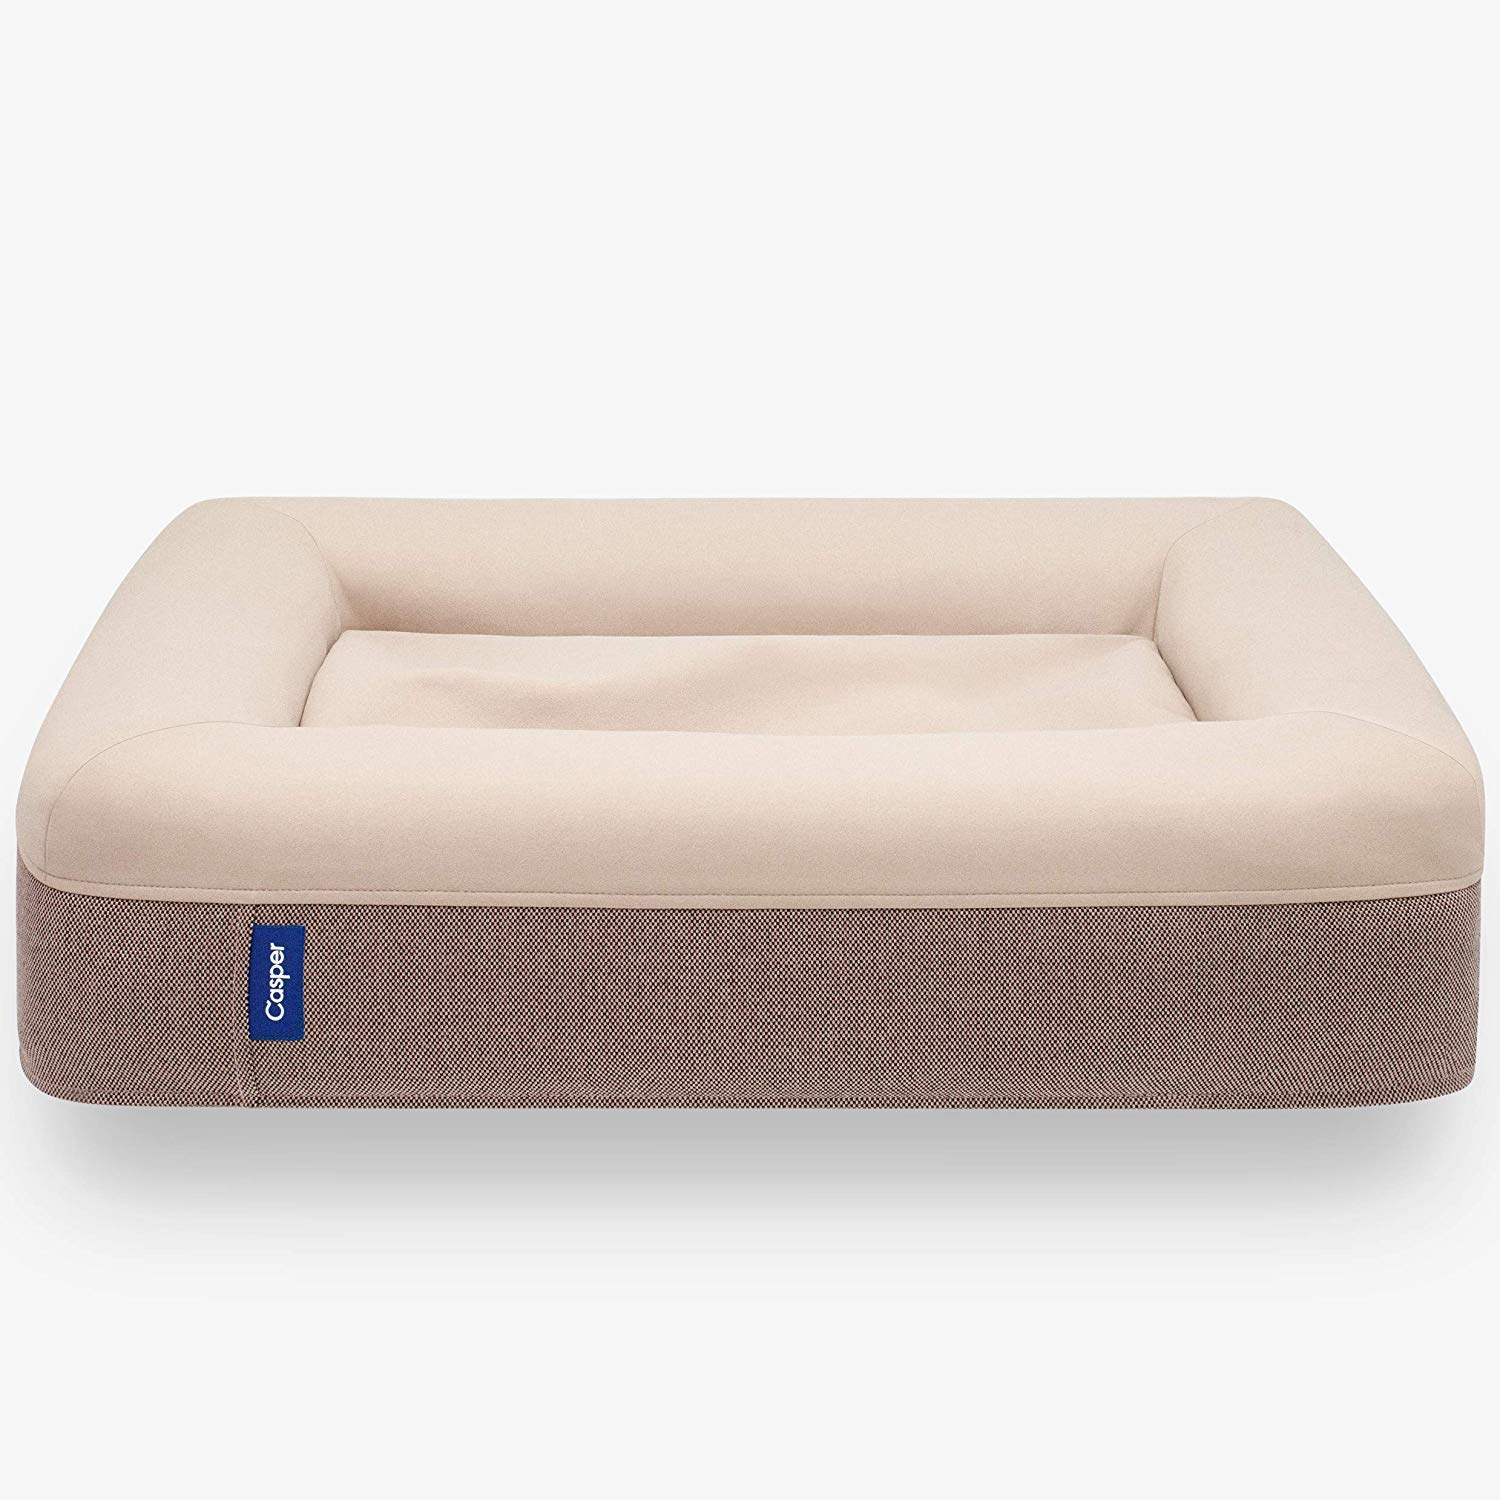 Amazon Hot Sale Washable Orthopedic Foam Whole Sale Dog Bed Pet Accessory All Sizes Small Large Giant Dog Bed Memory Foam Buy Luxury Style Design Simple Durable Manufacture Washable Best Quality Comfortable